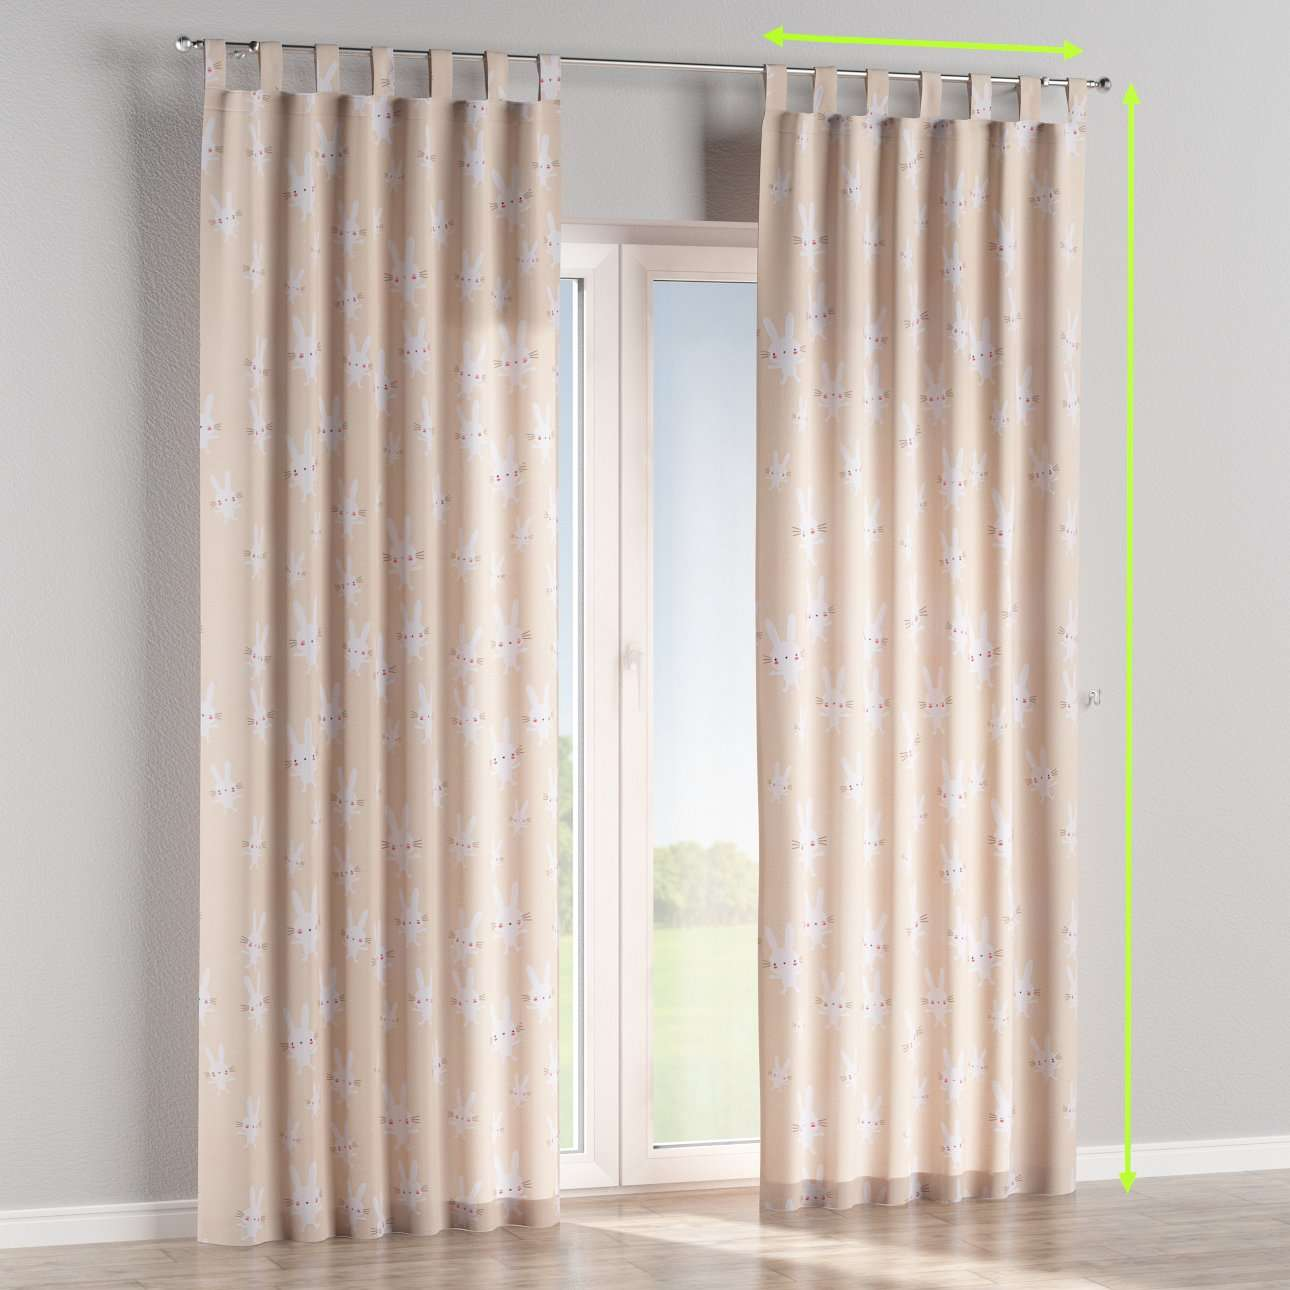 Tab top lined curtains in collection Apanona, fabric: 151-00